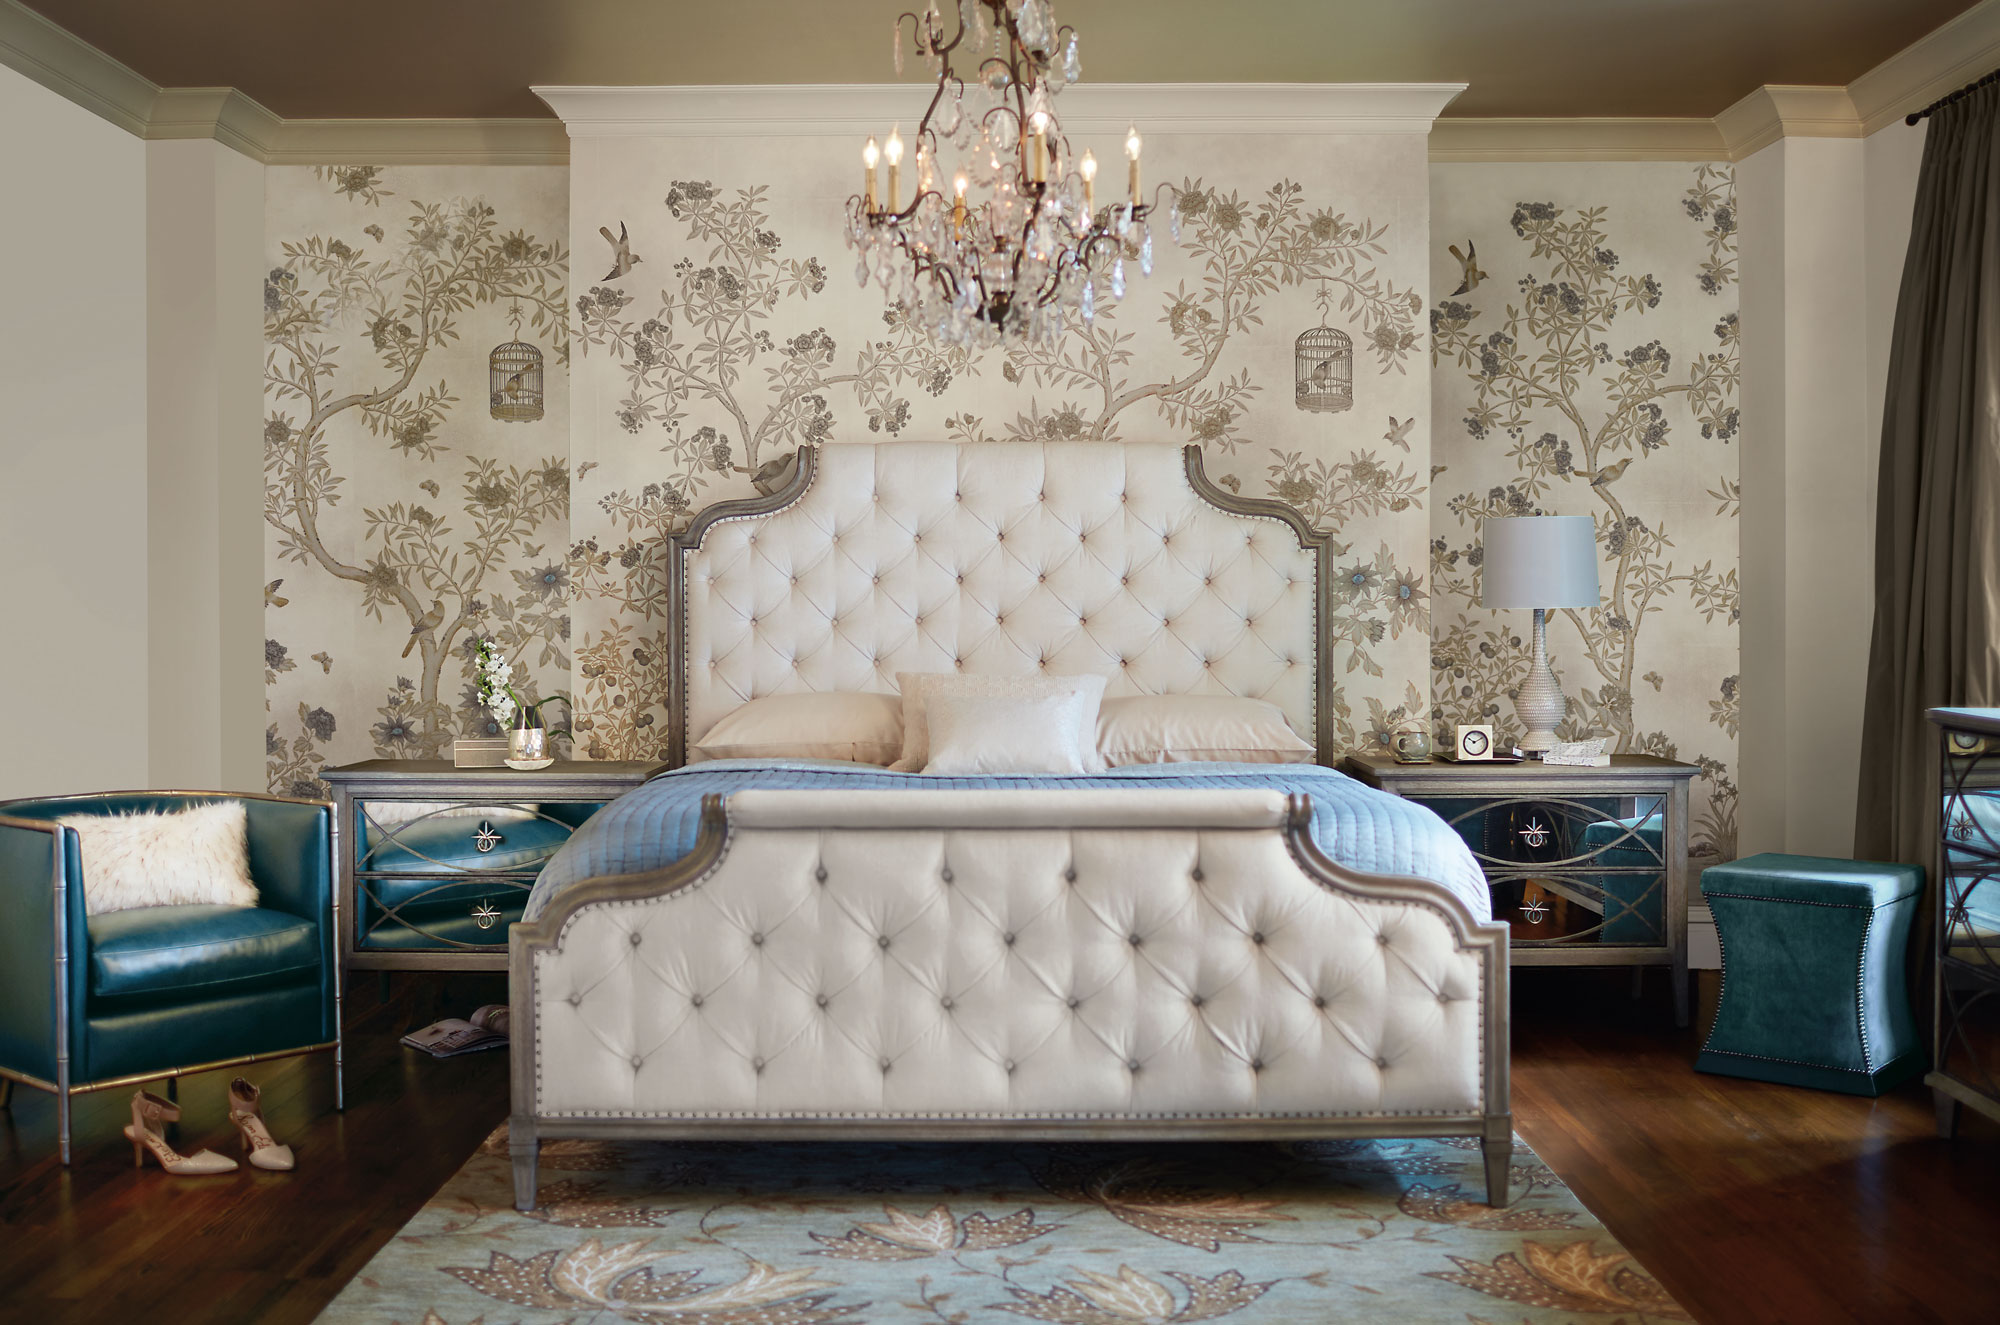 Mirrored Bedroom Beautiful Bedroom Inspiration This Peaceful Home